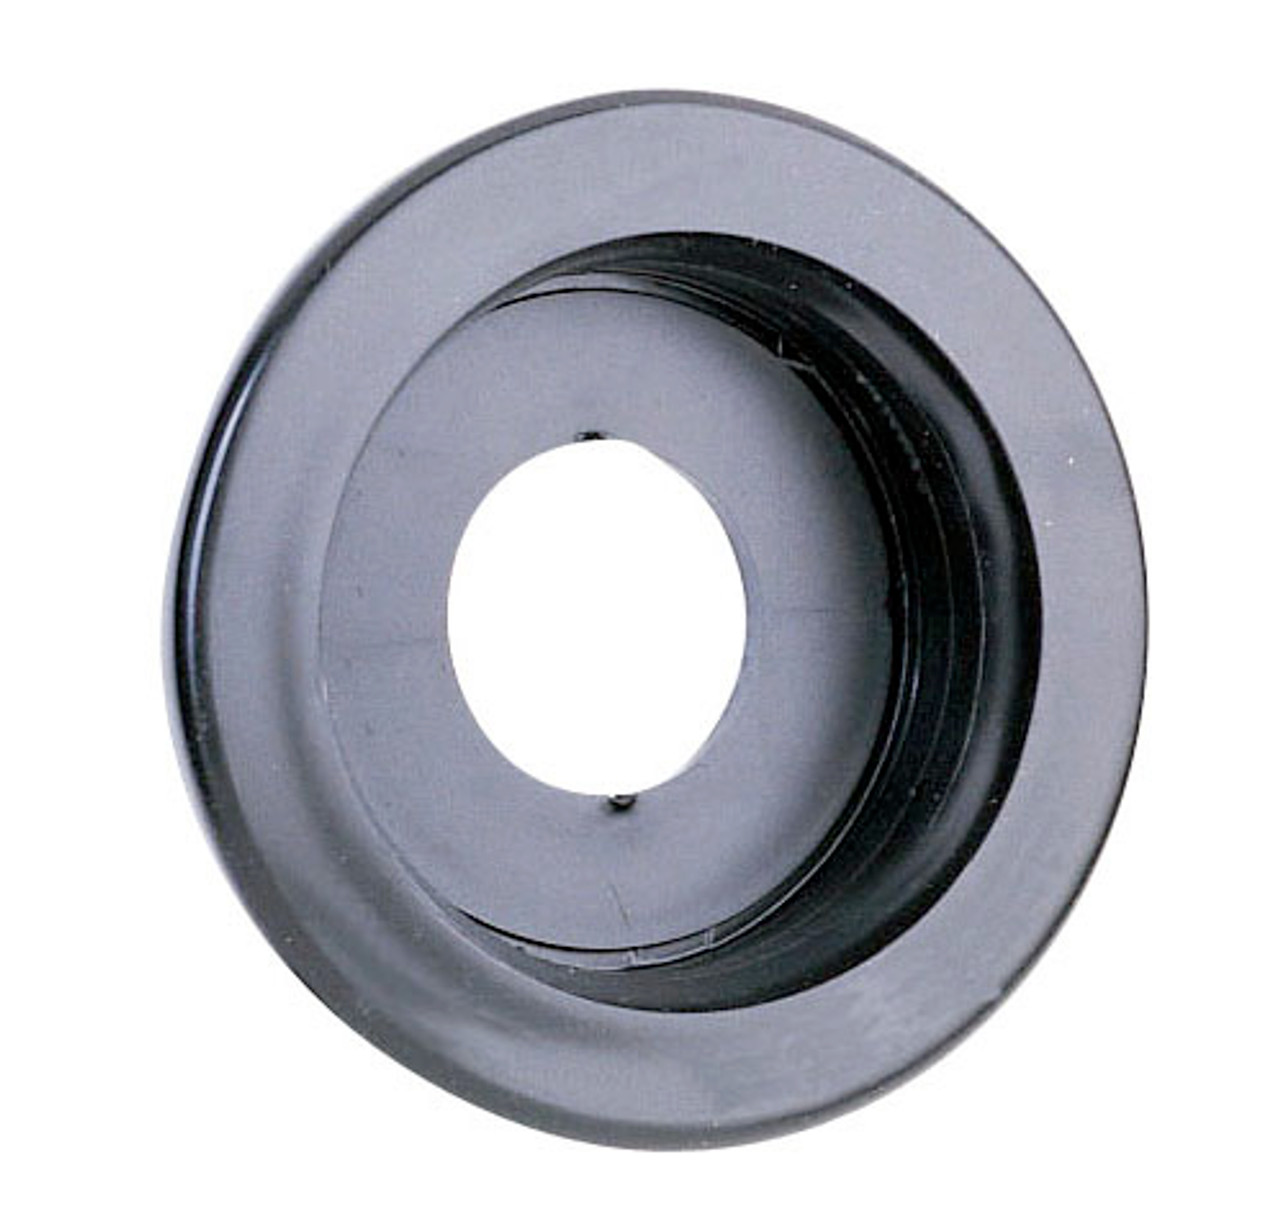 "142-18 --- Peterson 2-1/2"" Round Replacement Recessed Mount Grommet"